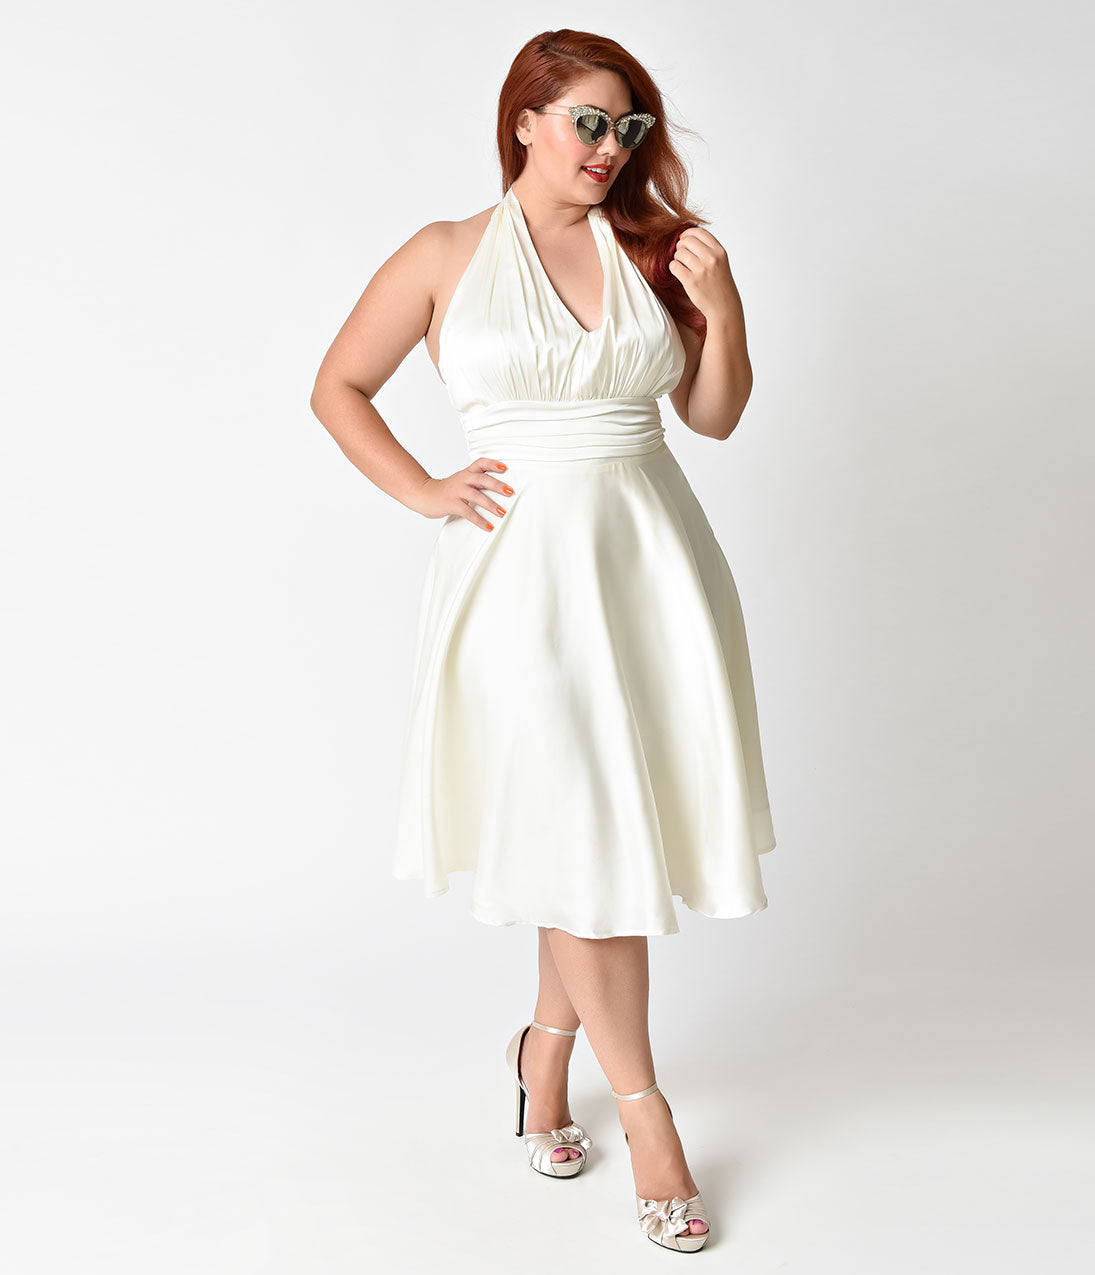 60s Wedding Dress | 1960s Style Wedding Dresses Unique Vintage Plus Size 1950s Style Ivory Satin Halter Hyannis Swing Dress $98.00 AT vintagedancer.com